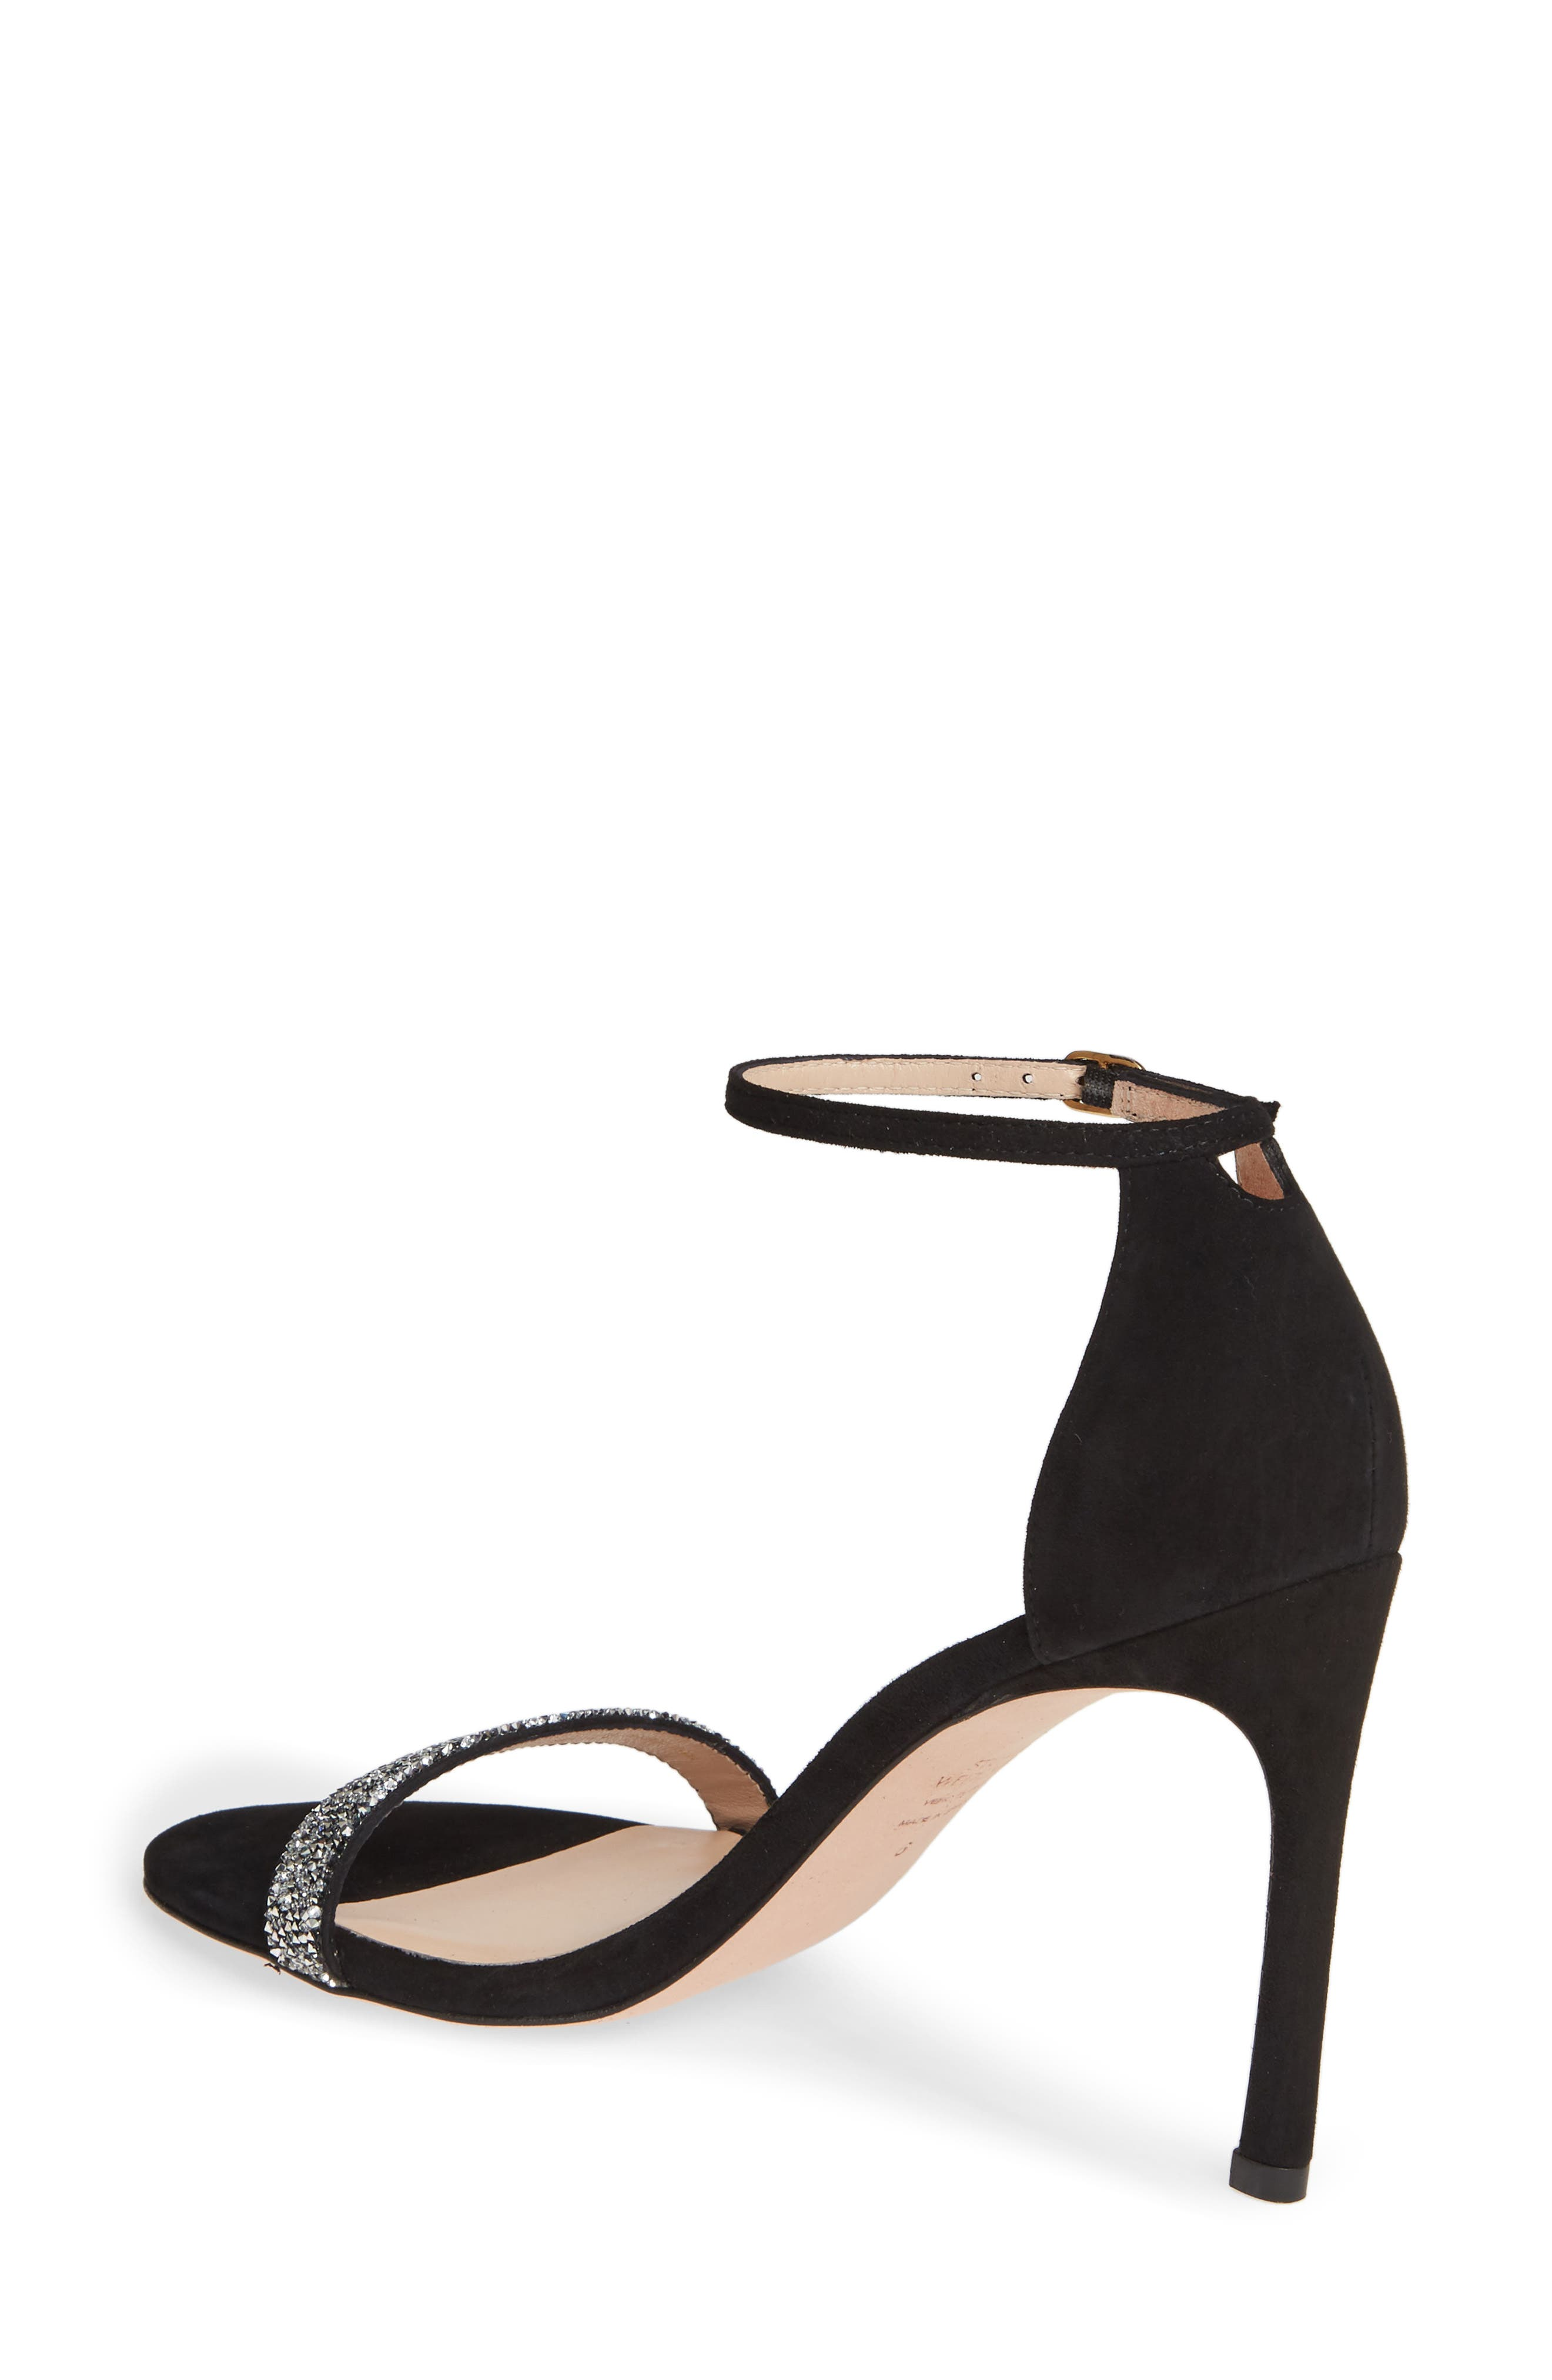 STUART WEITZMAN, Nudistsong Ankle Strap Sandal, Alternate thumbnail 2, color, BLACK